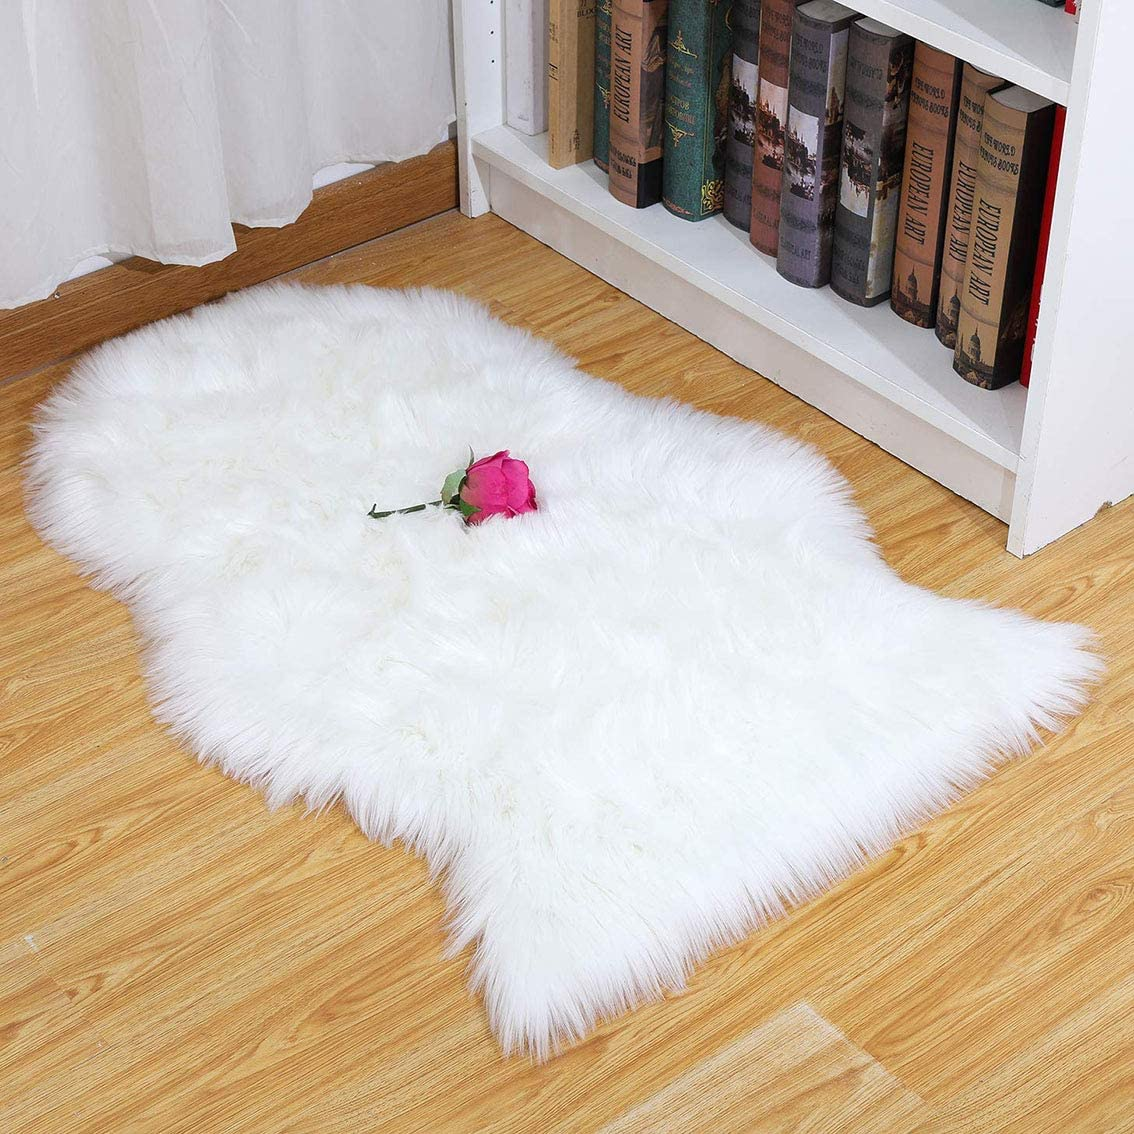 Merit Home Super Soft Fluffy Home Decor Faux Sheepskin Silky Rug for Bedroom Floor Sofa Chair Cover Cushion Seat Pad Shaggy Area Carpet, 2 x 3ft, Ivory White